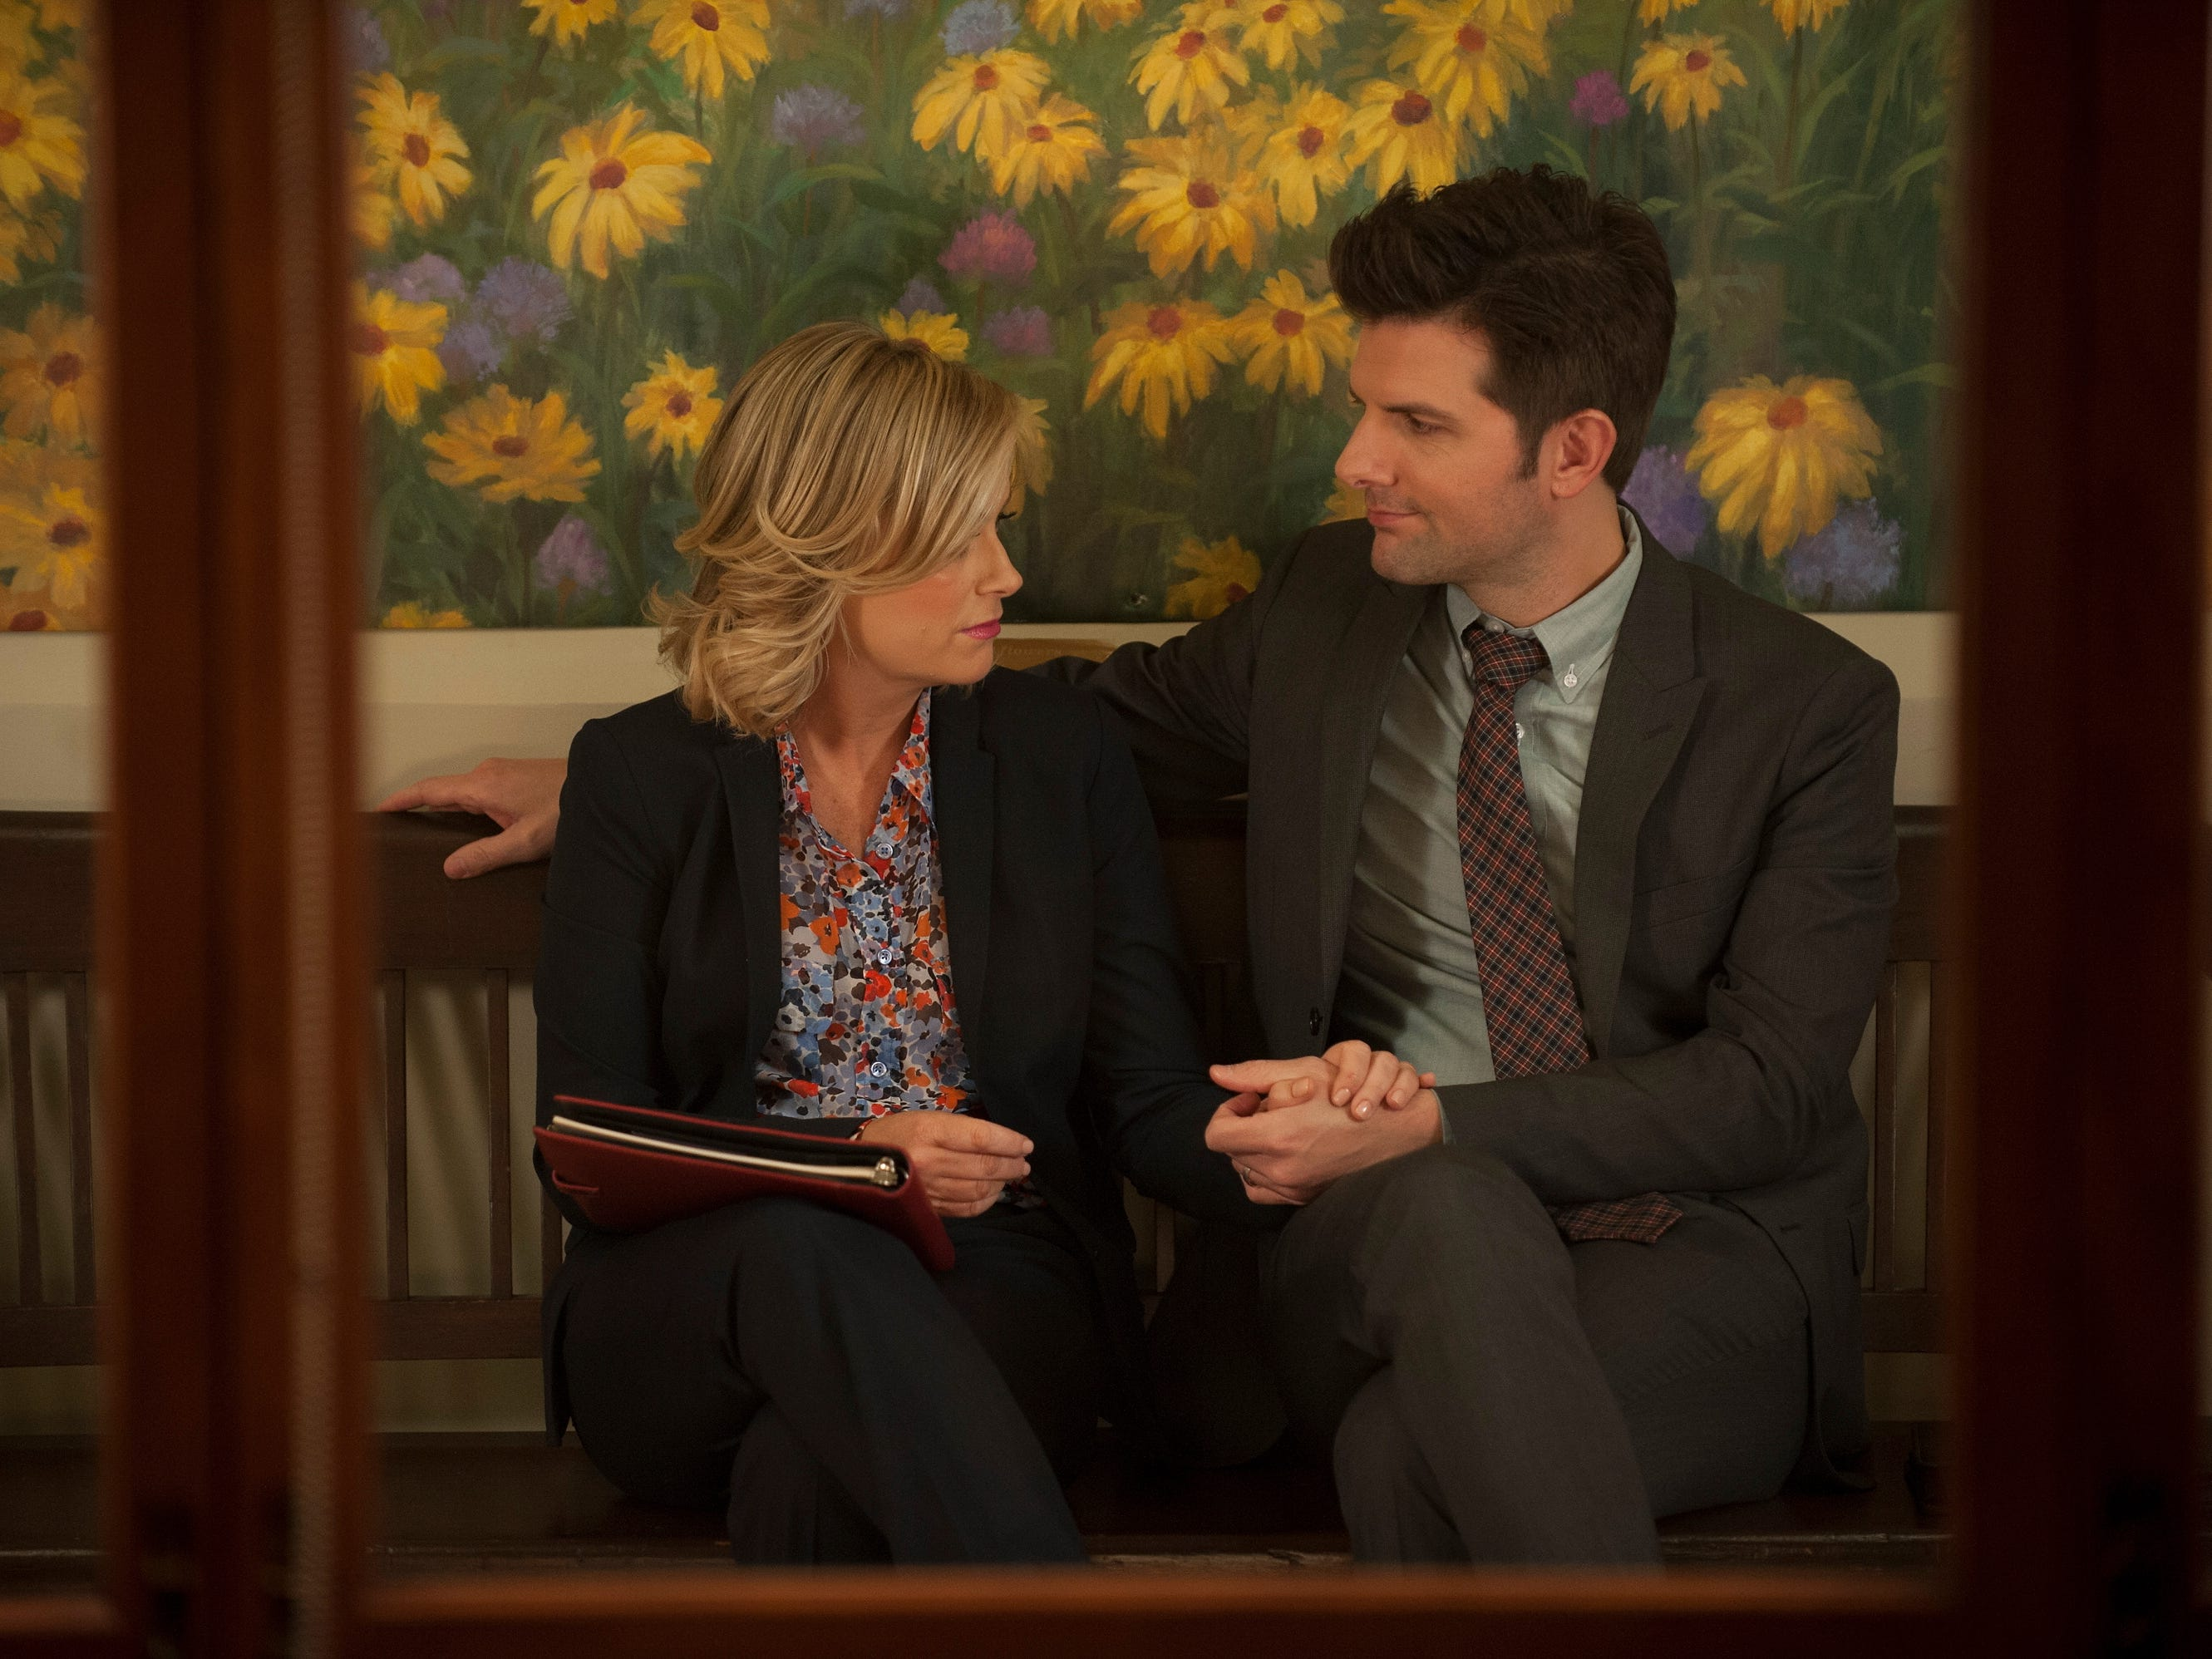 Leslie's love interest on the show was Ben Wyatt, played by Adam Scott. Ben was a state auditor who came to check on the parks and rec department and never left.